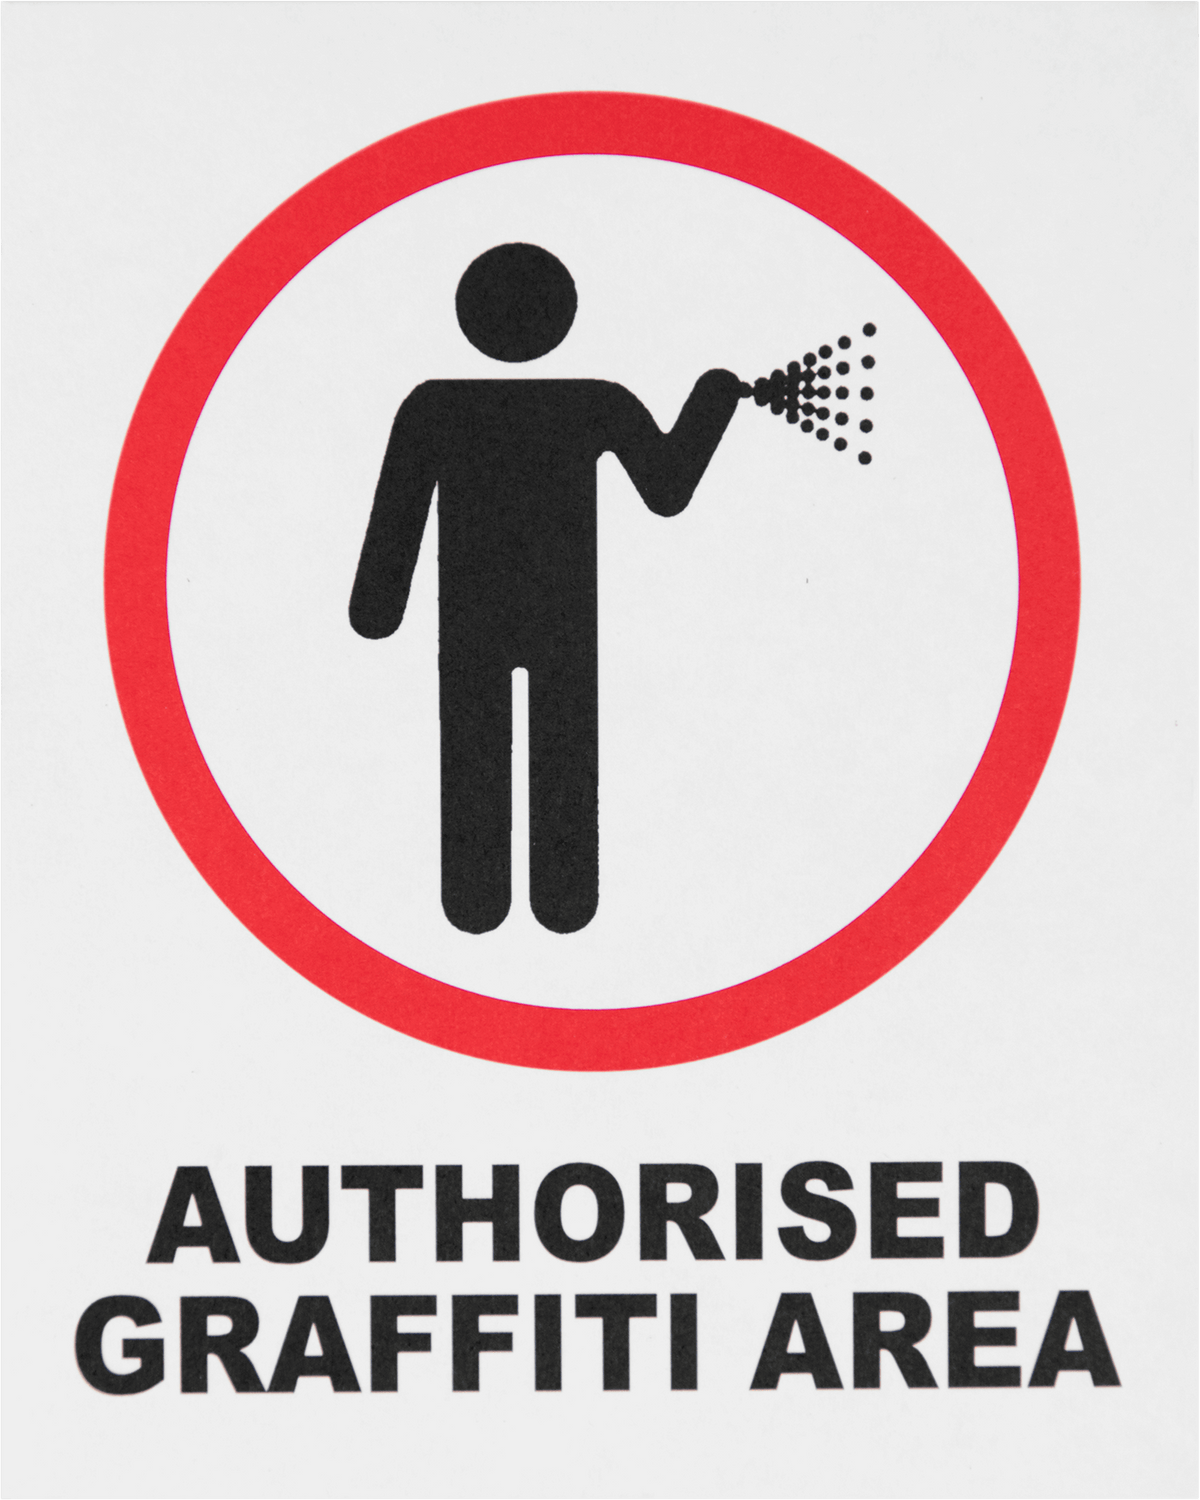 Authorised Graffiti Area